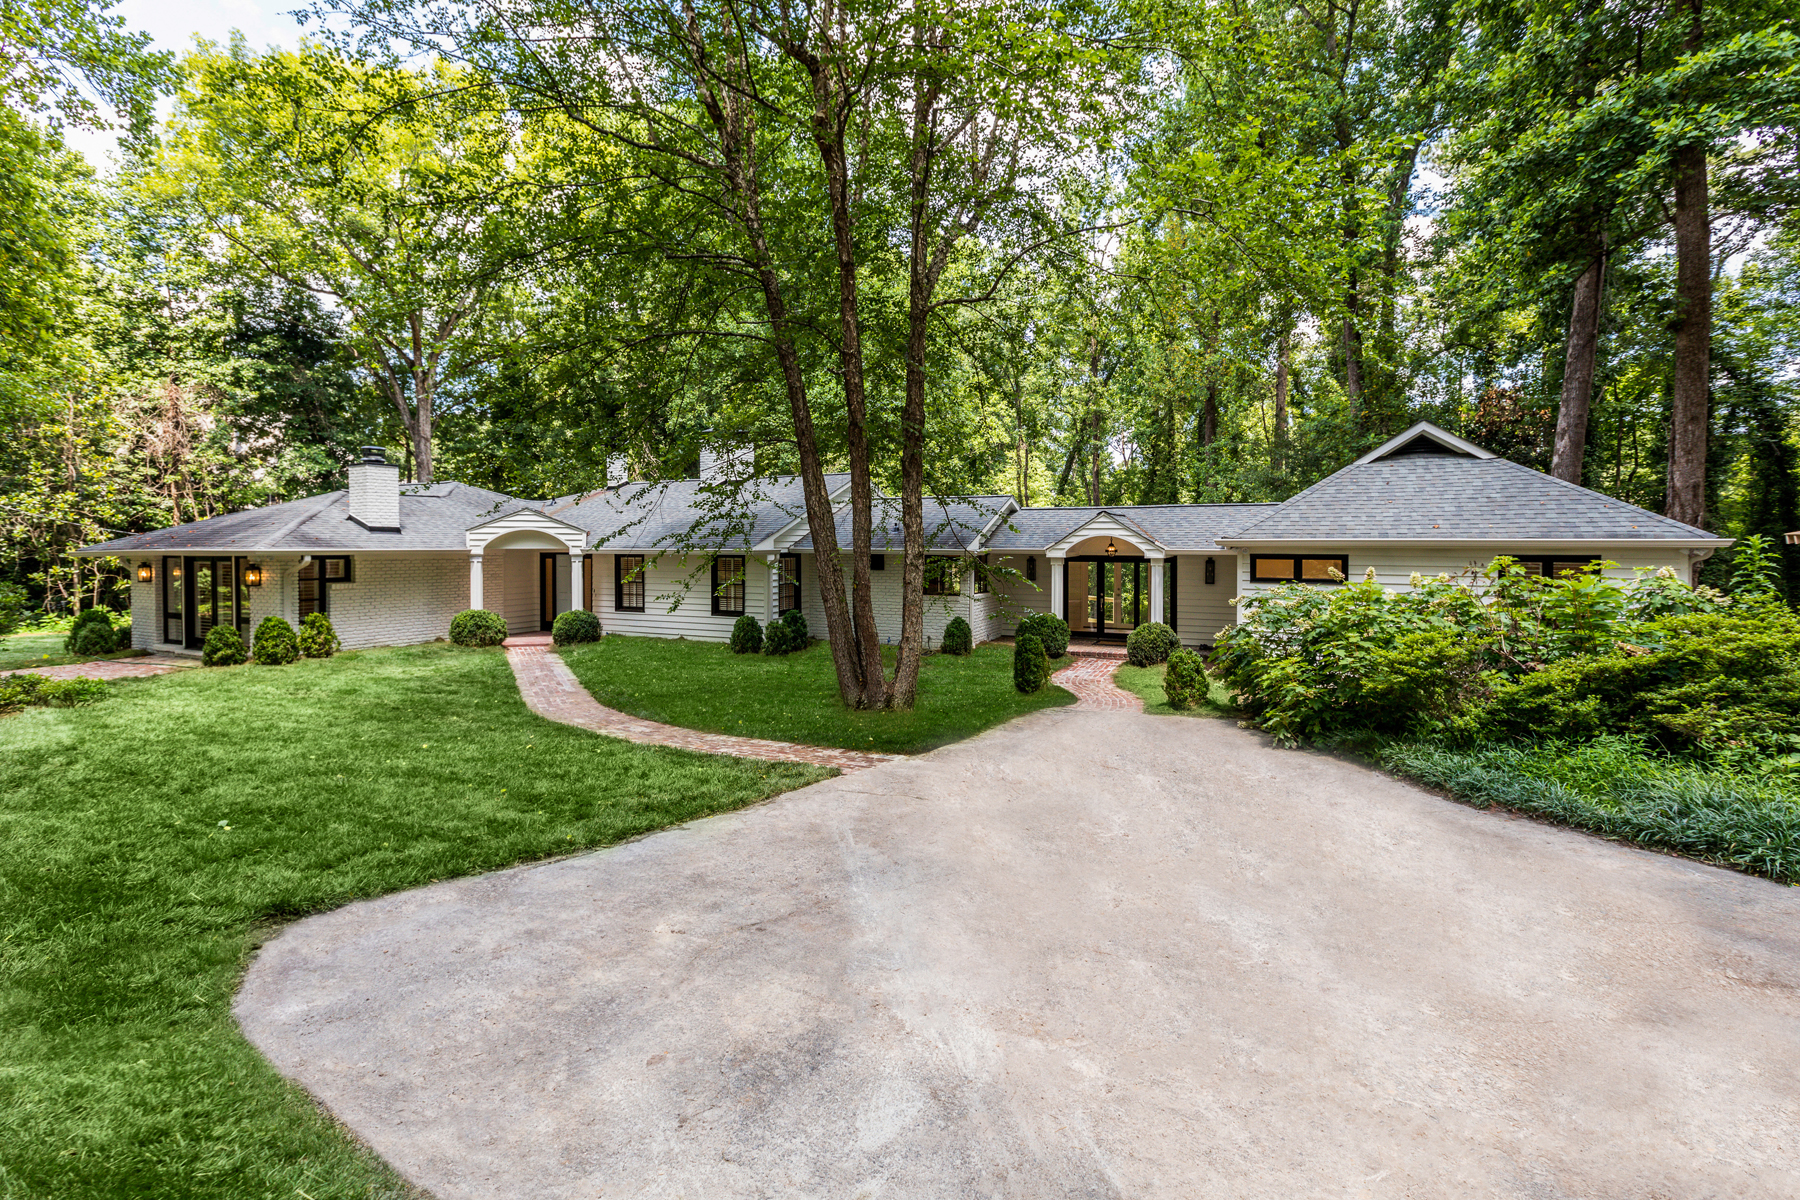 Single Family Home for Rent at Recently Renovated Sandy Springs Ranch Home For Lease 4685 Northside Drive Sandy Springs, Georgia 30327 United States